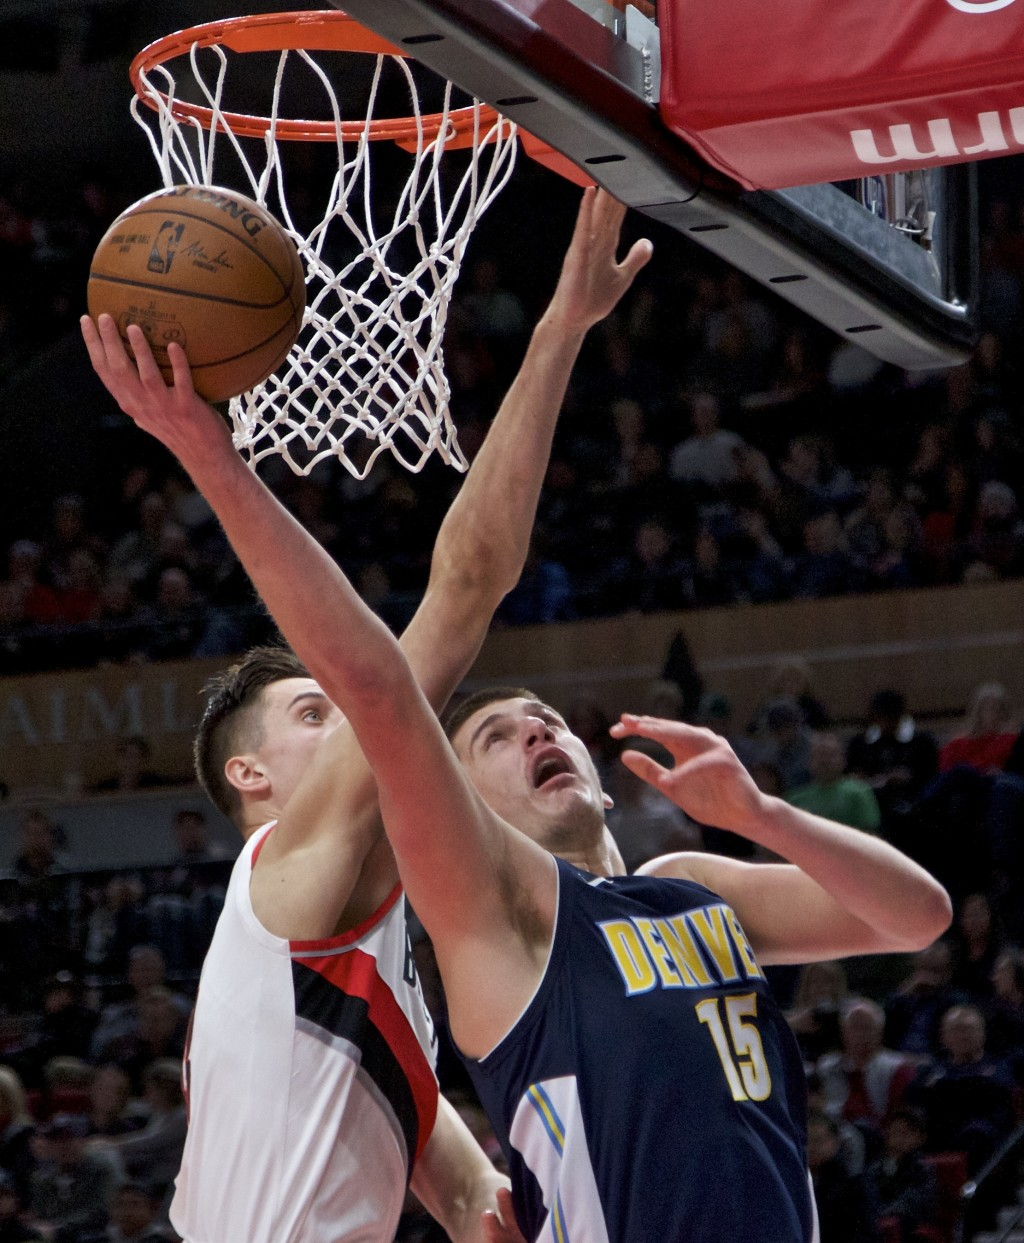 Denver Nuggets center Nikola Jokic, right, shoots over Portland Trail Blazers center Zach Collins during the first half of an NBA basketball game in P...